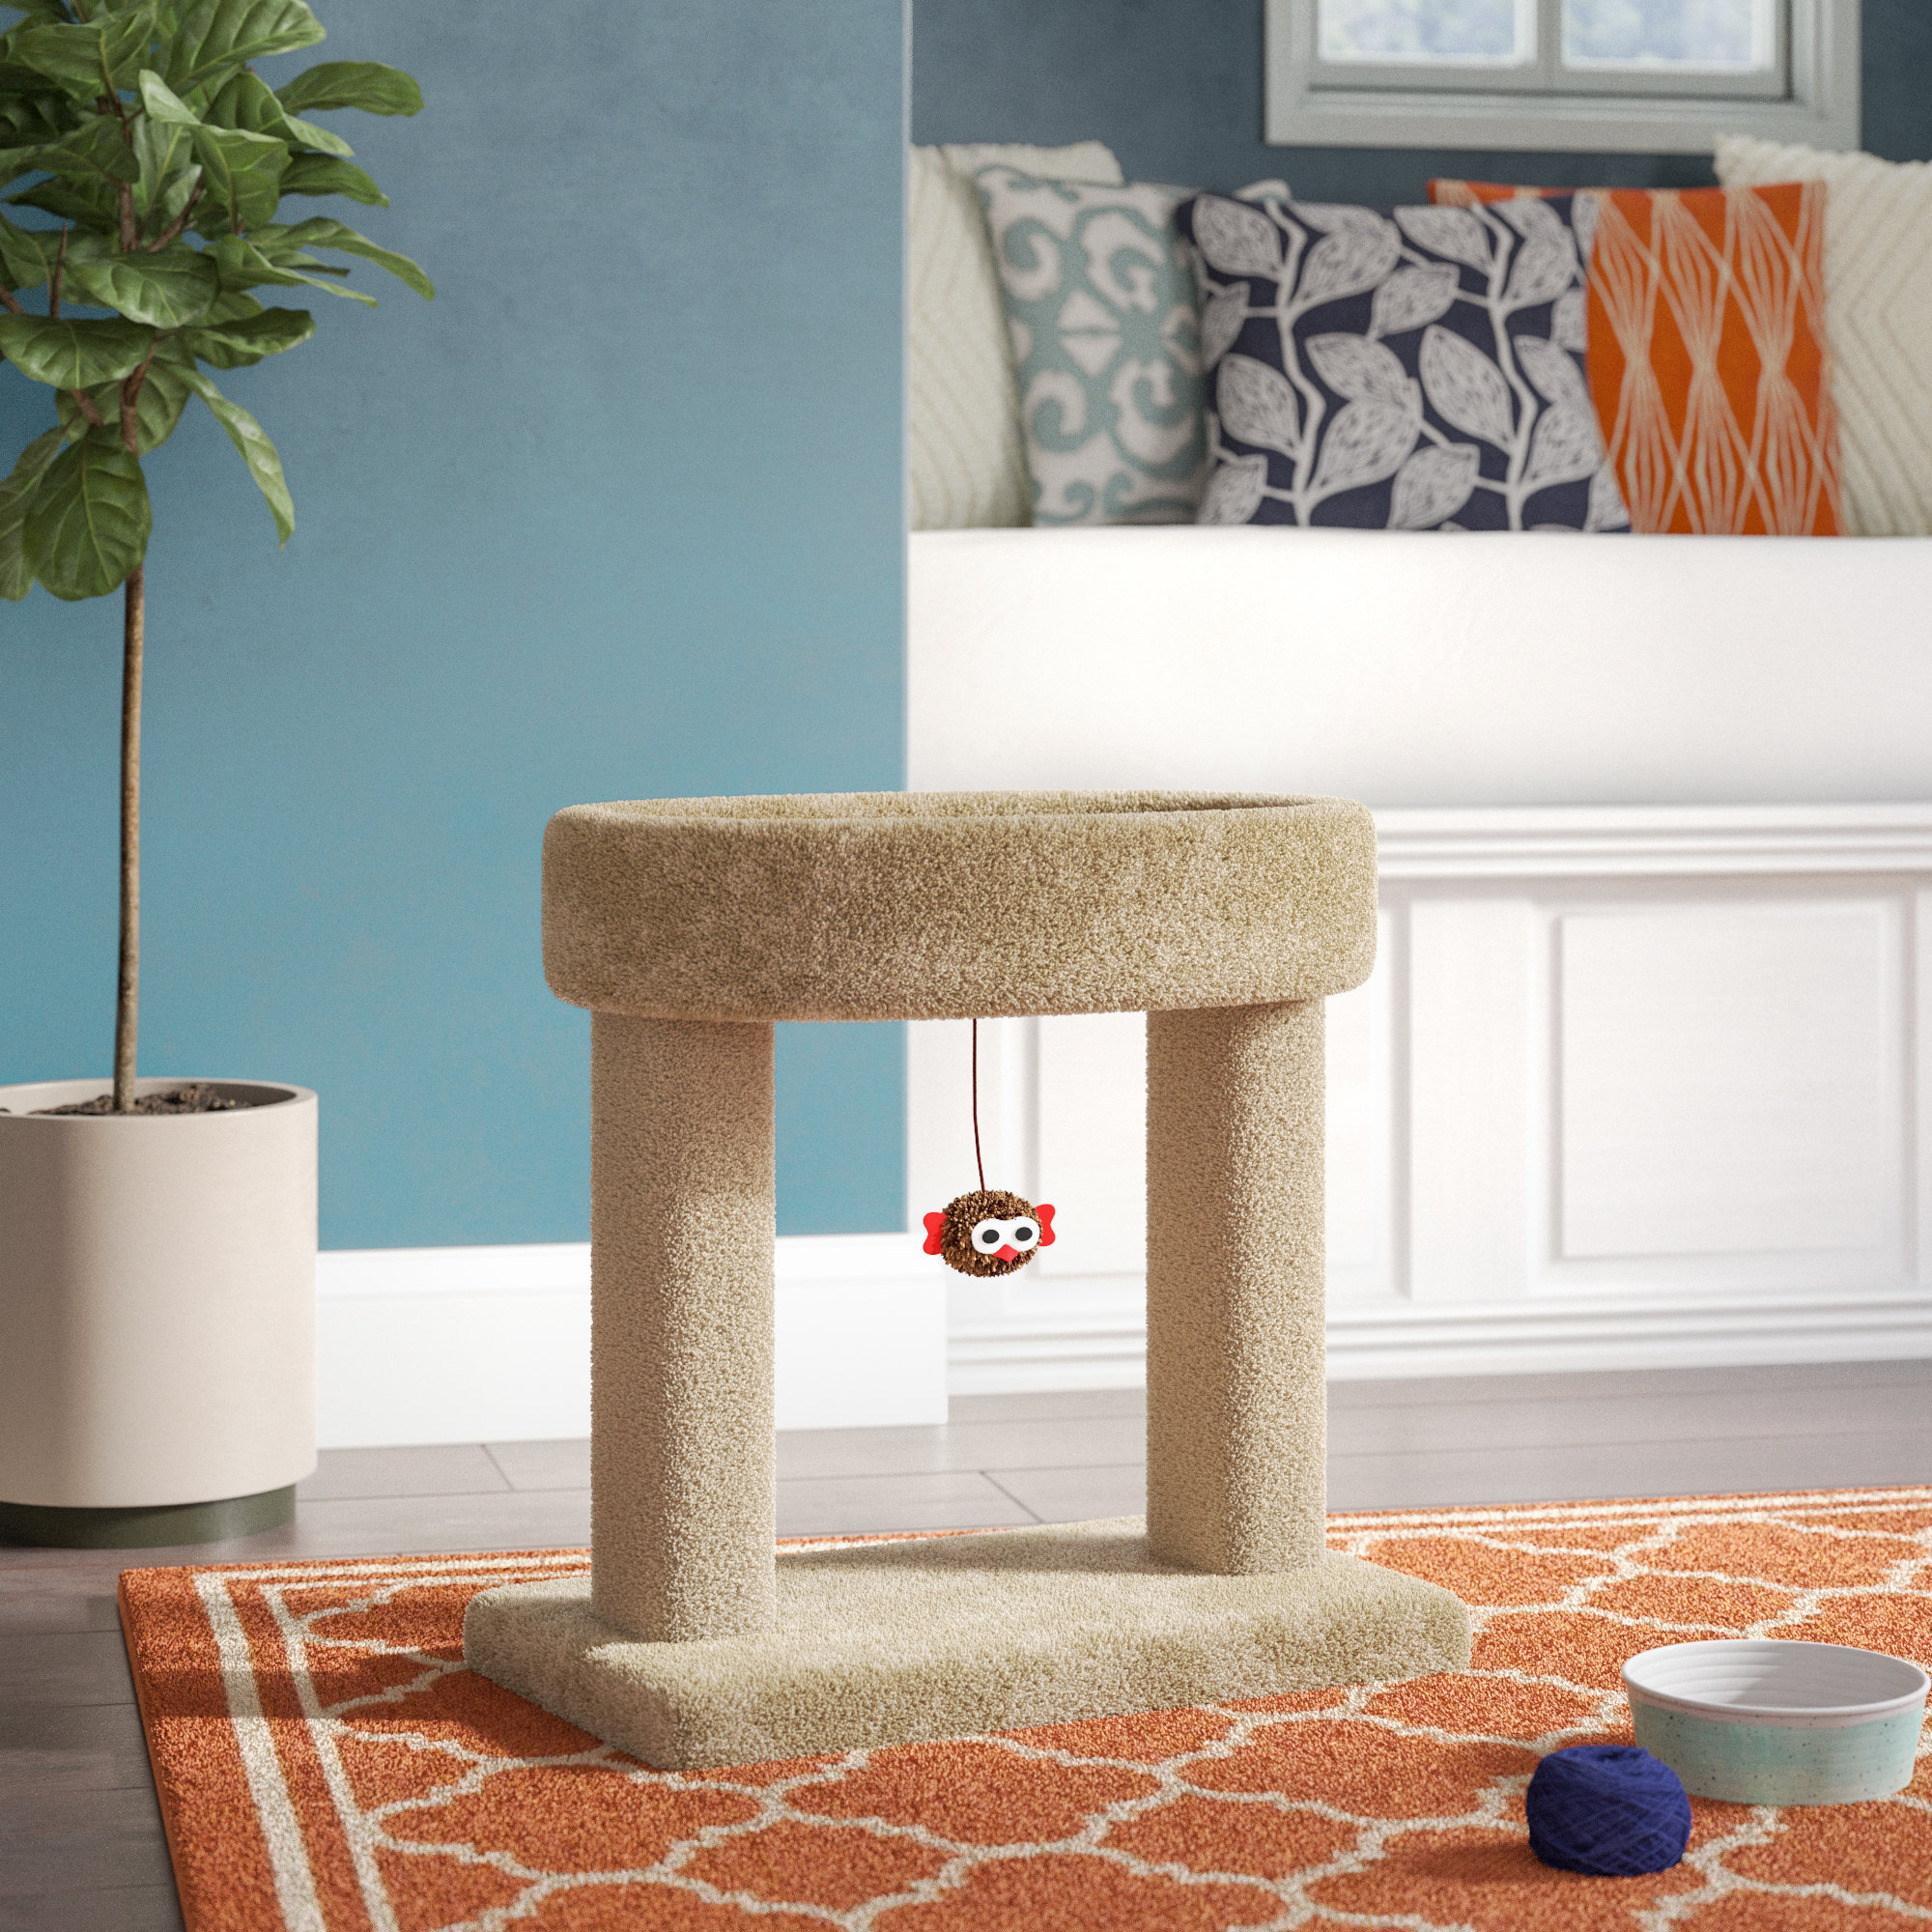 "Archie & Oscar 21"" Fifi Kitty Cradle Cat Condo & Reviews 